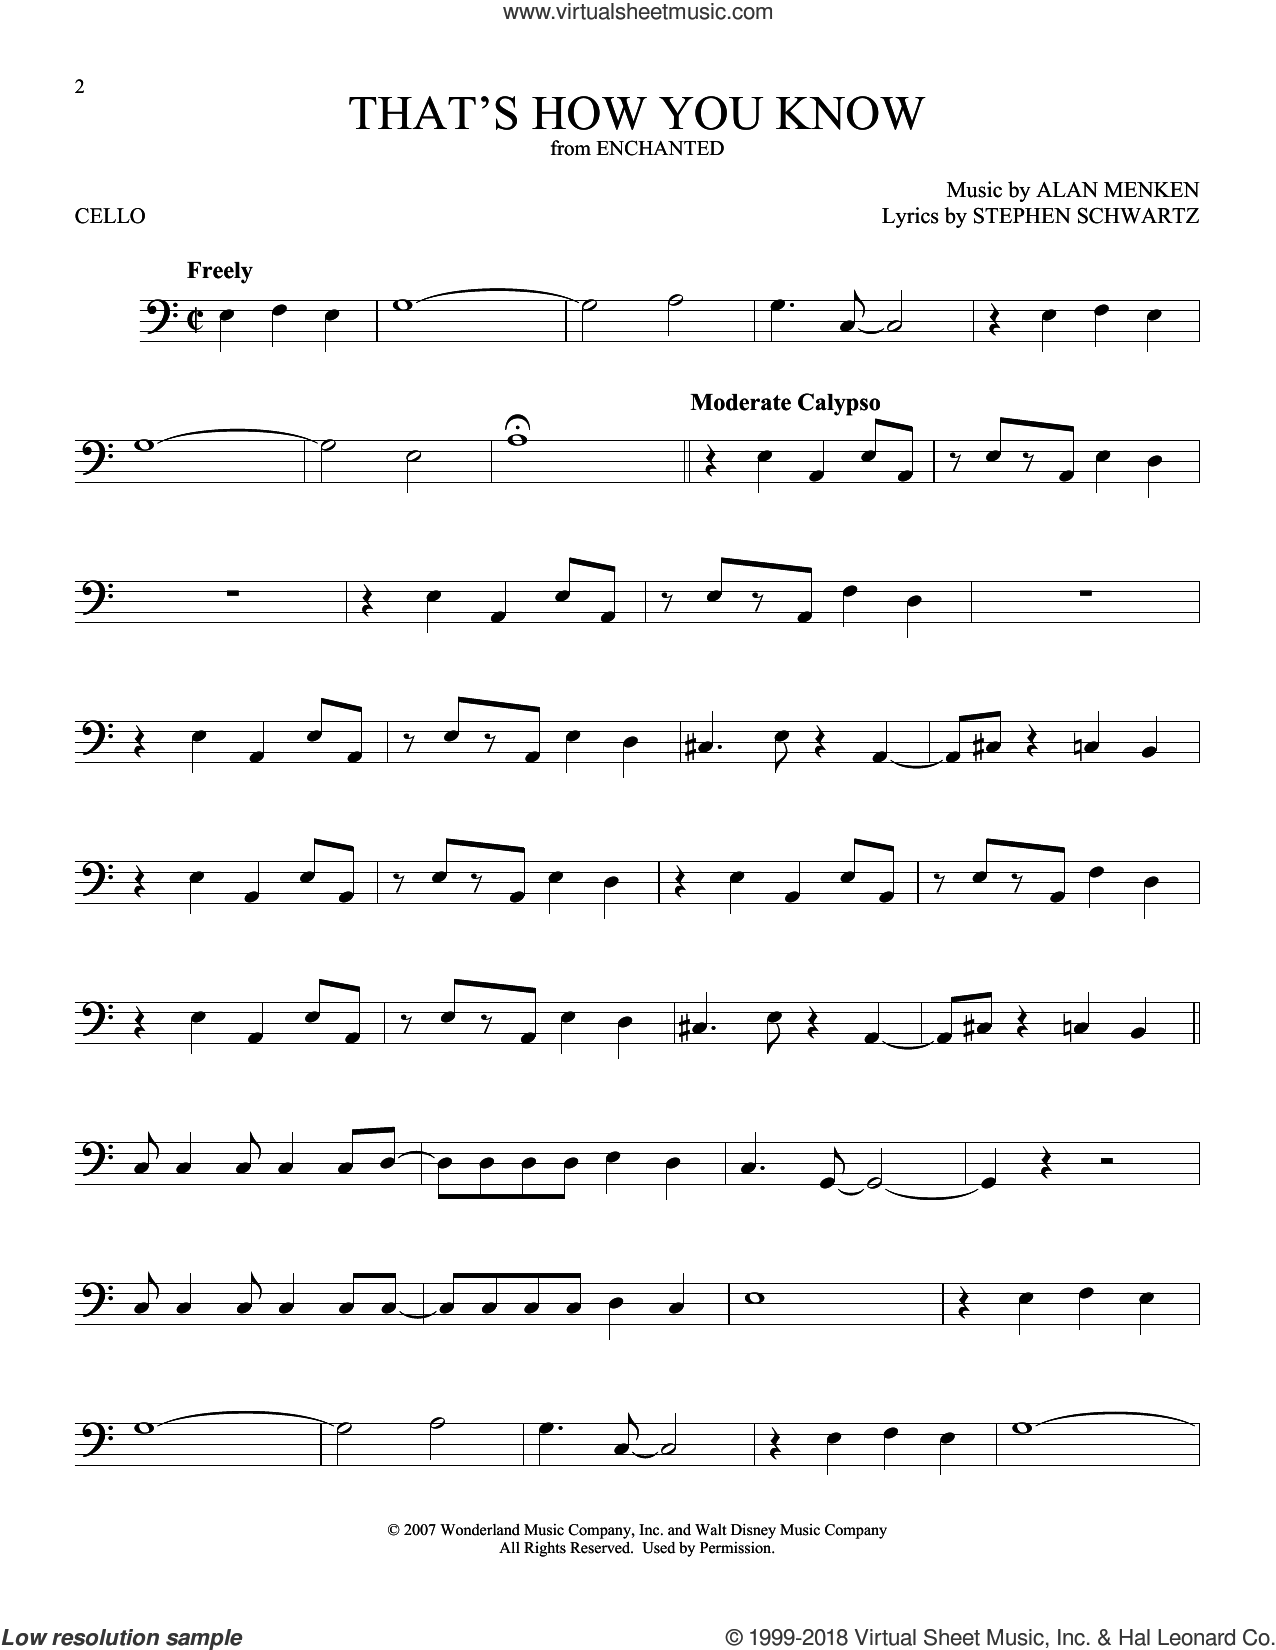 That's How You Know (from Enchanted) sheet music for cello solo by Alan Menken and Stephen Schwartz, intermediate skill level